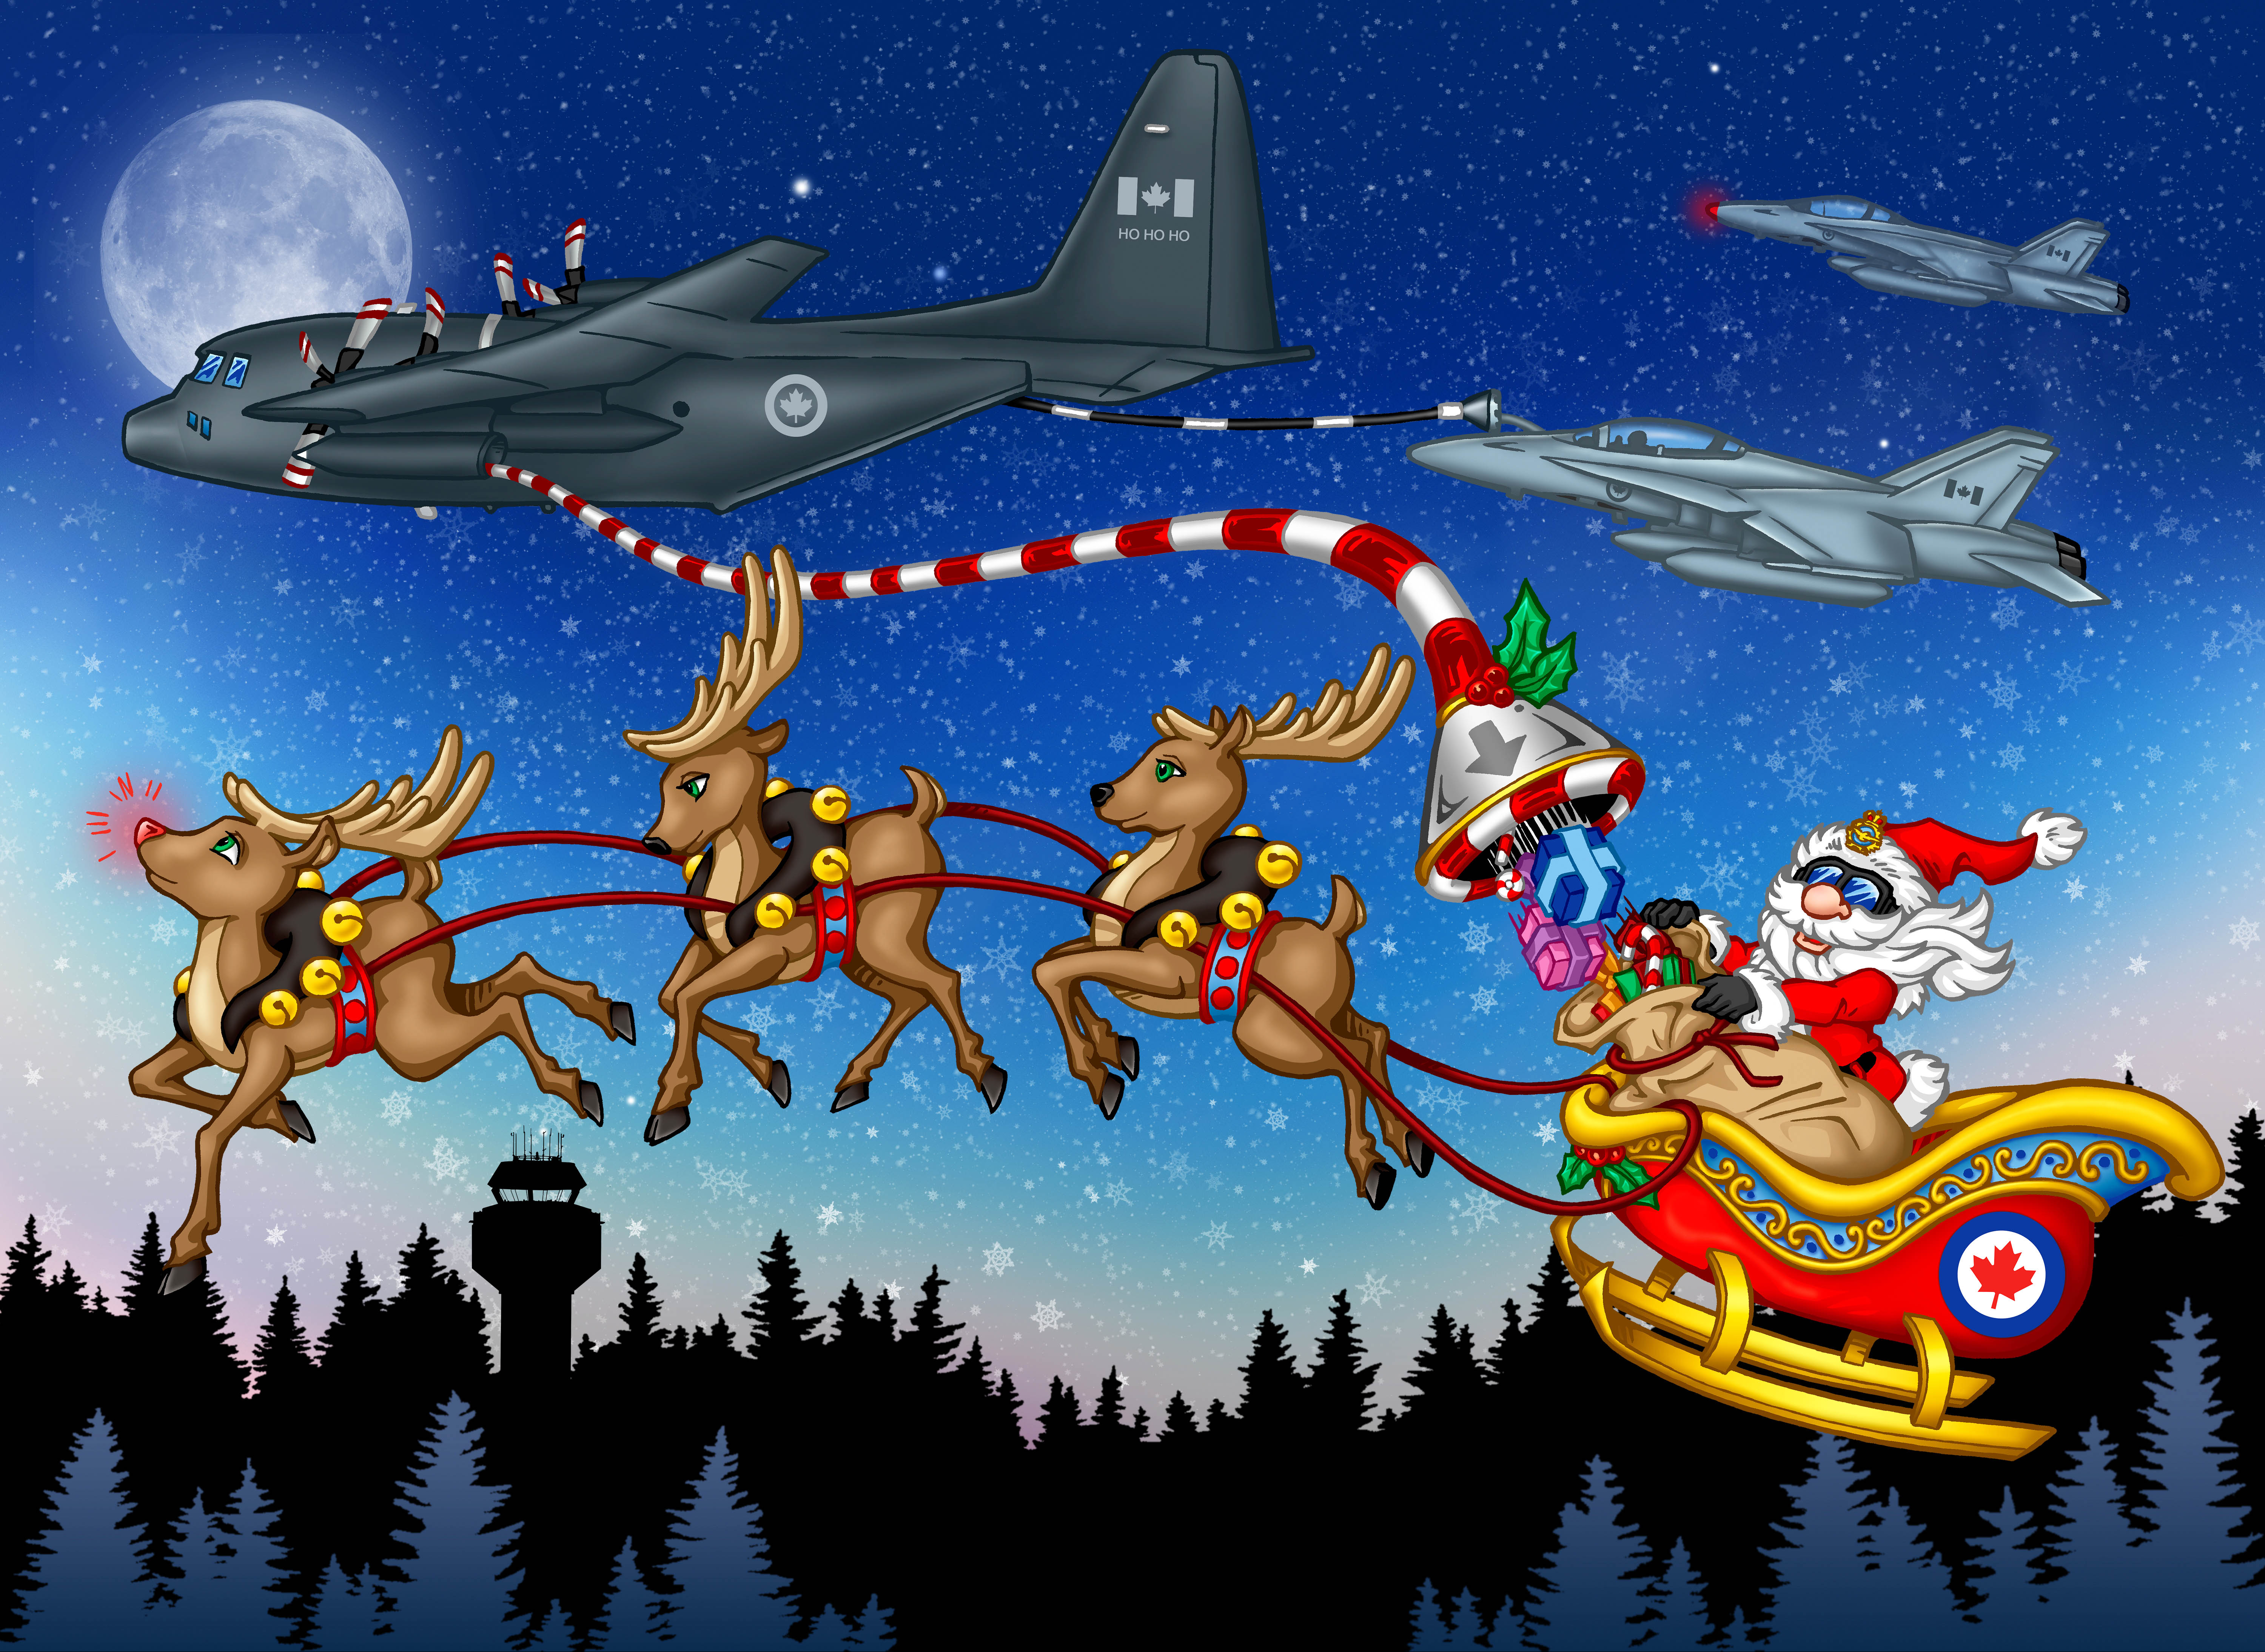 A colourful illustration of Santa in his sleigh with three reindeer flying through the sky with three military aircraft.